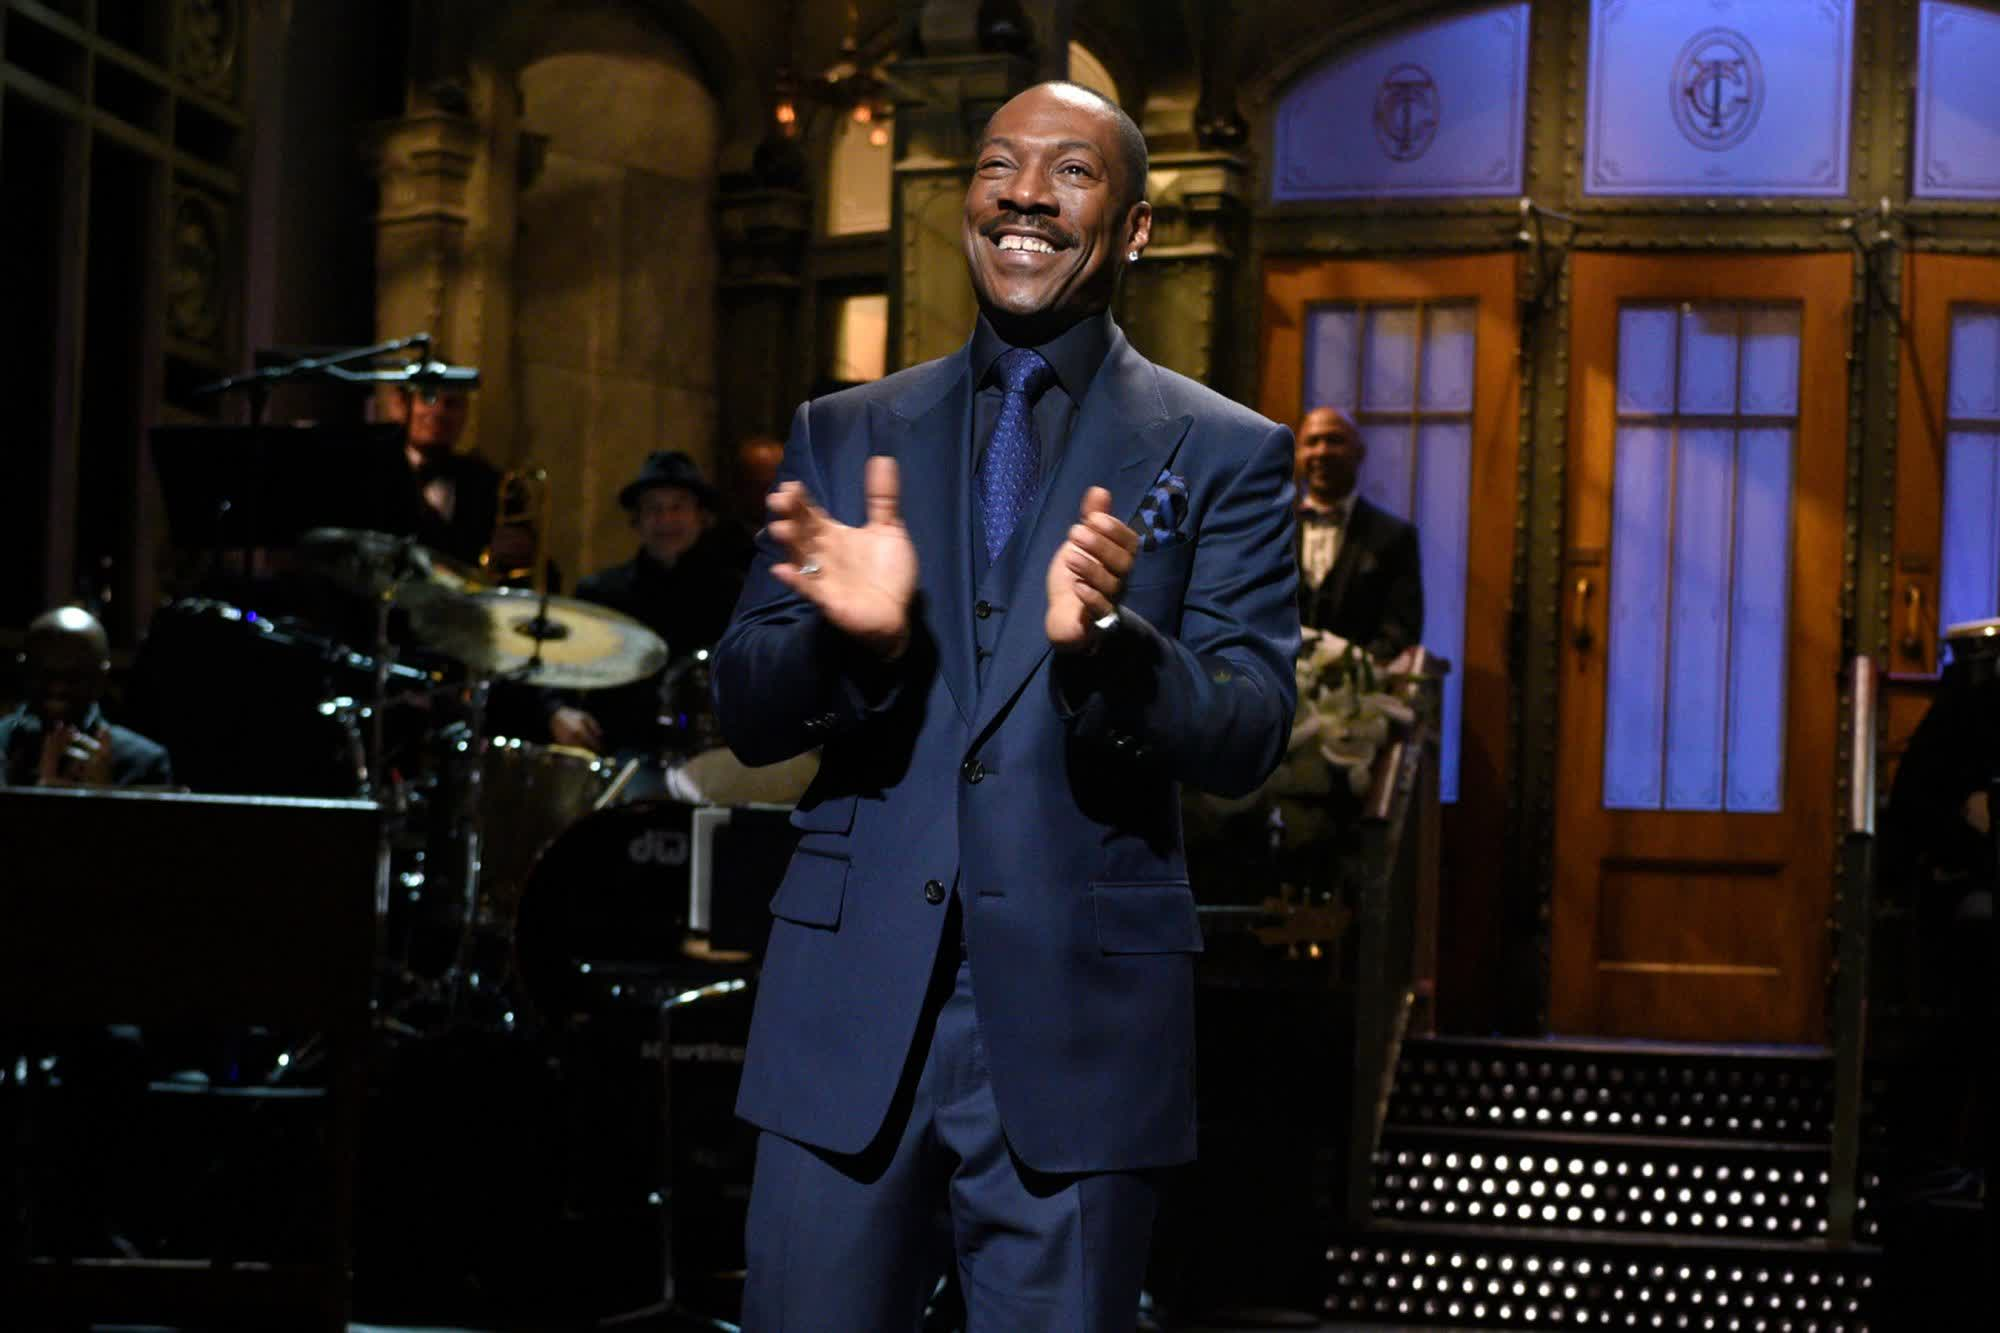 NBC's Peacock service is getting SNL's full catalog on October 1